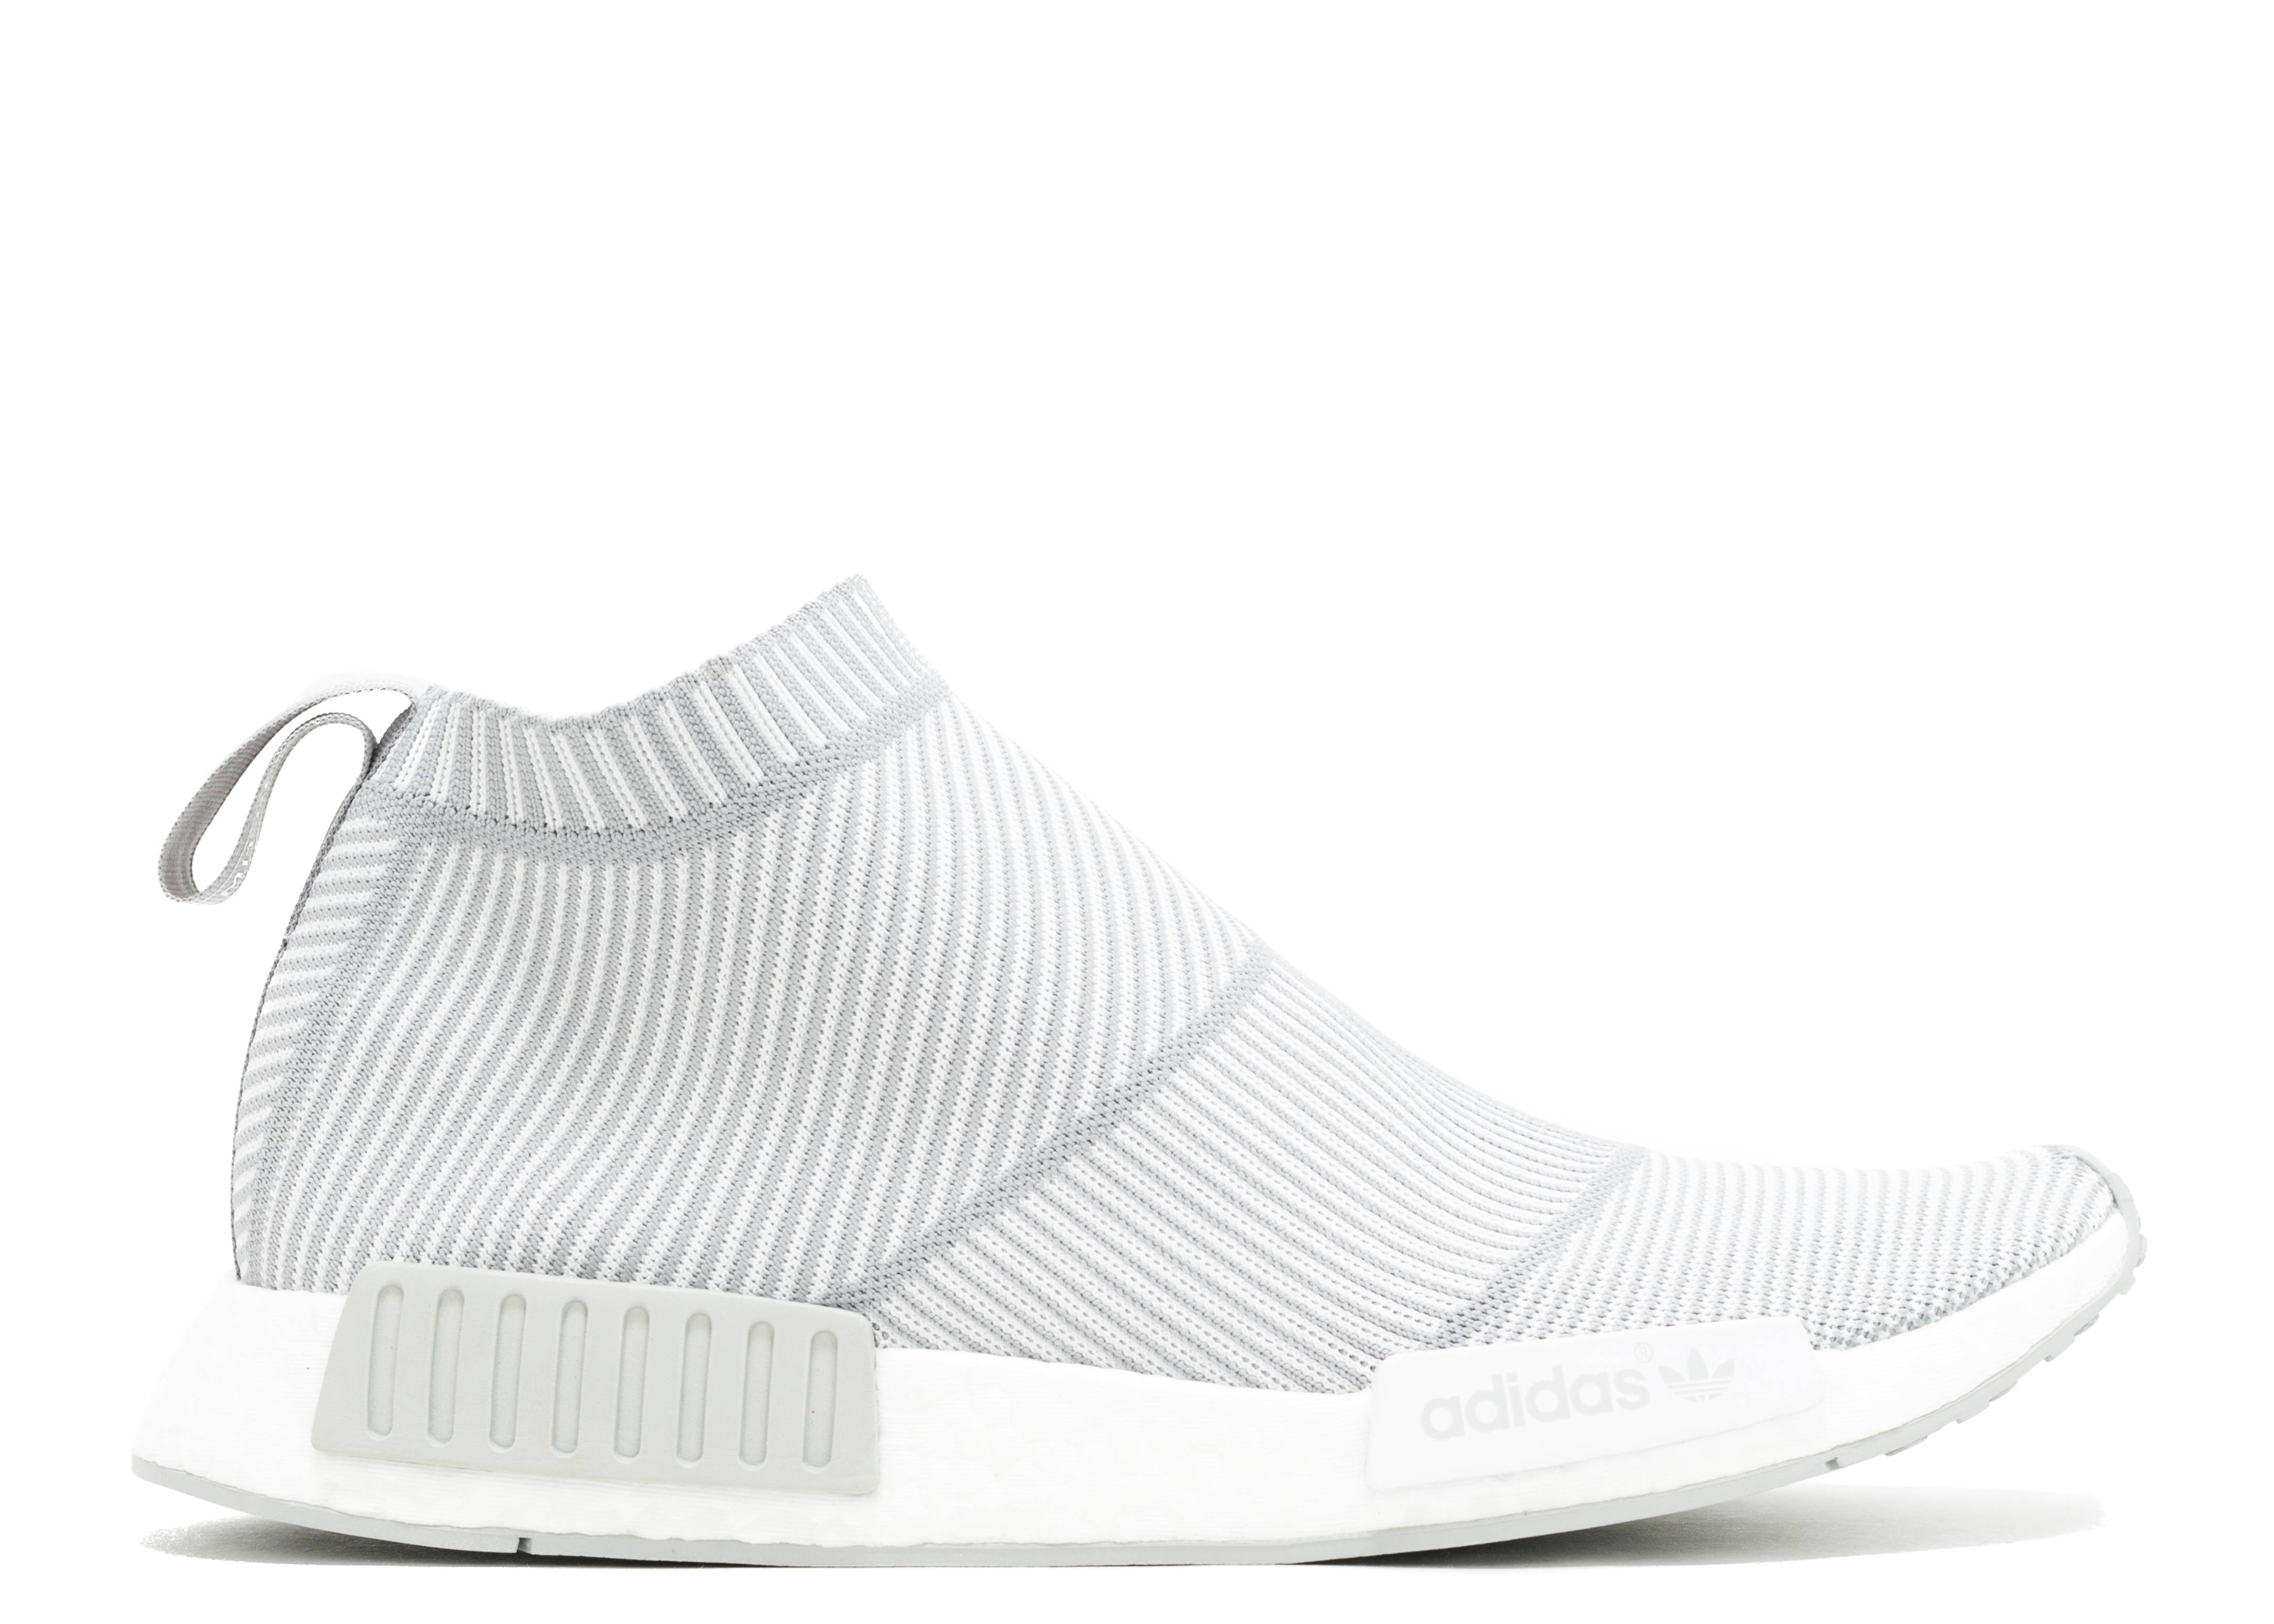 Adidas NMD XR1 PK Women's Running Shoes Road